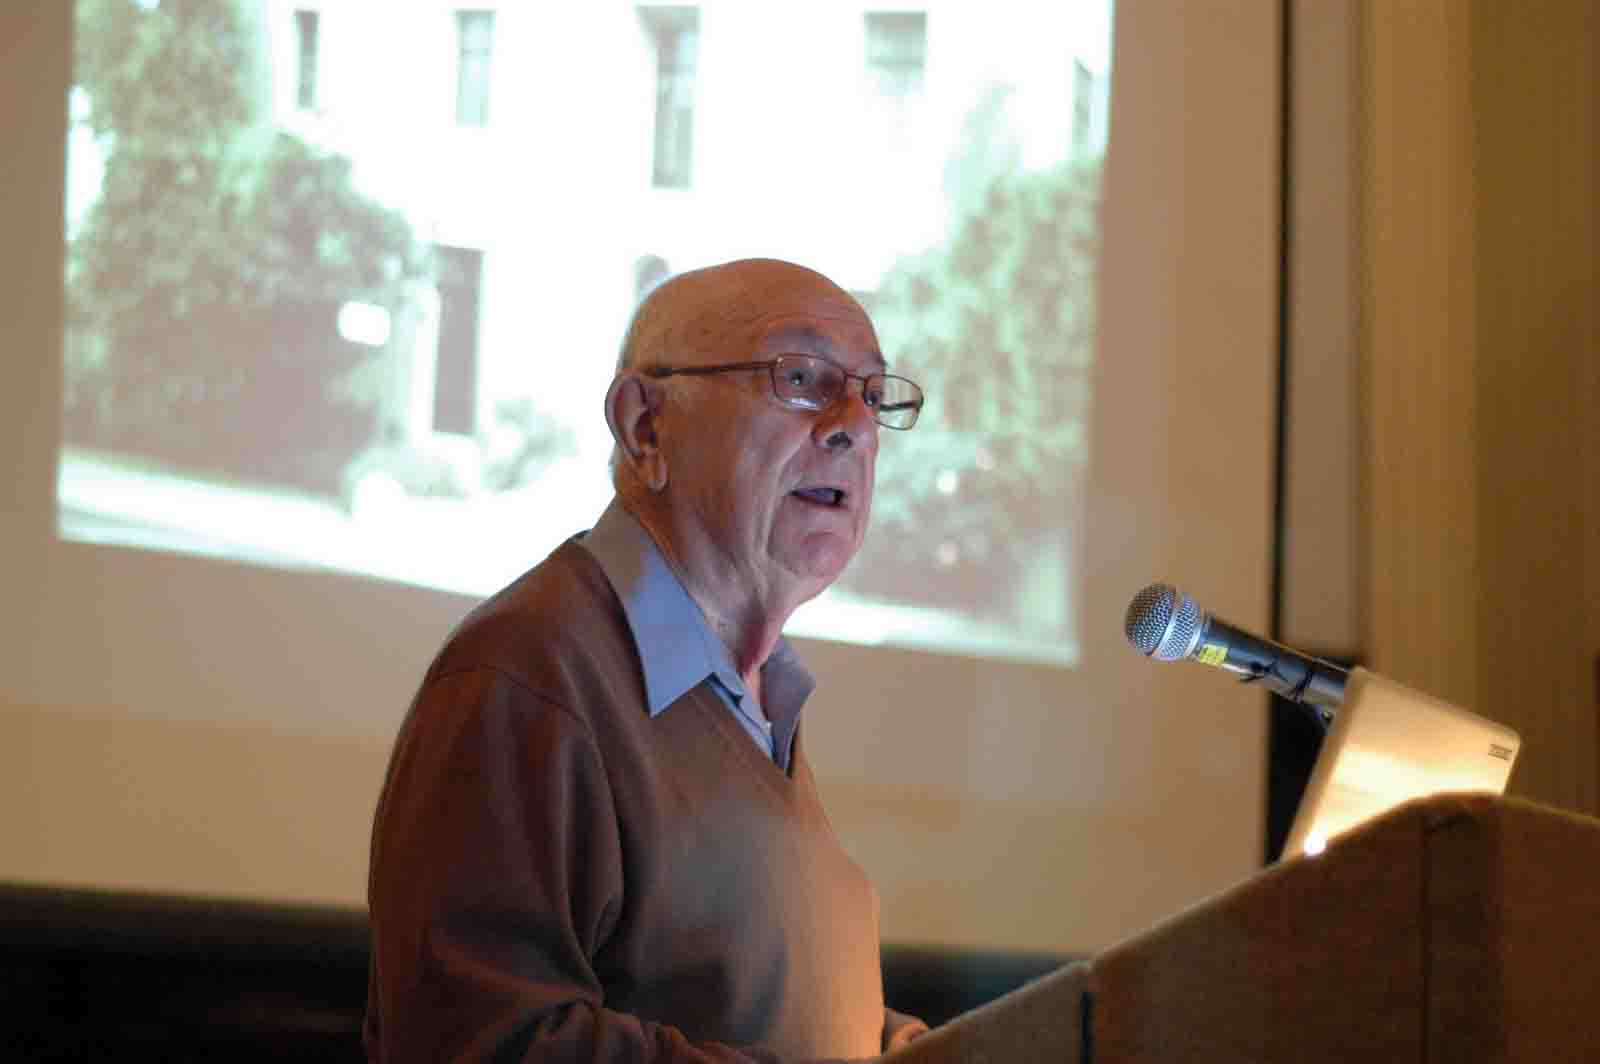 https://pasadenaheritage.org/wp-content/uploads/2019/11/The-Inagural-Dr-Robert-Winter-Lecture-Was-Held-at-the-Historic-Exhibit-Hall-C.jpg